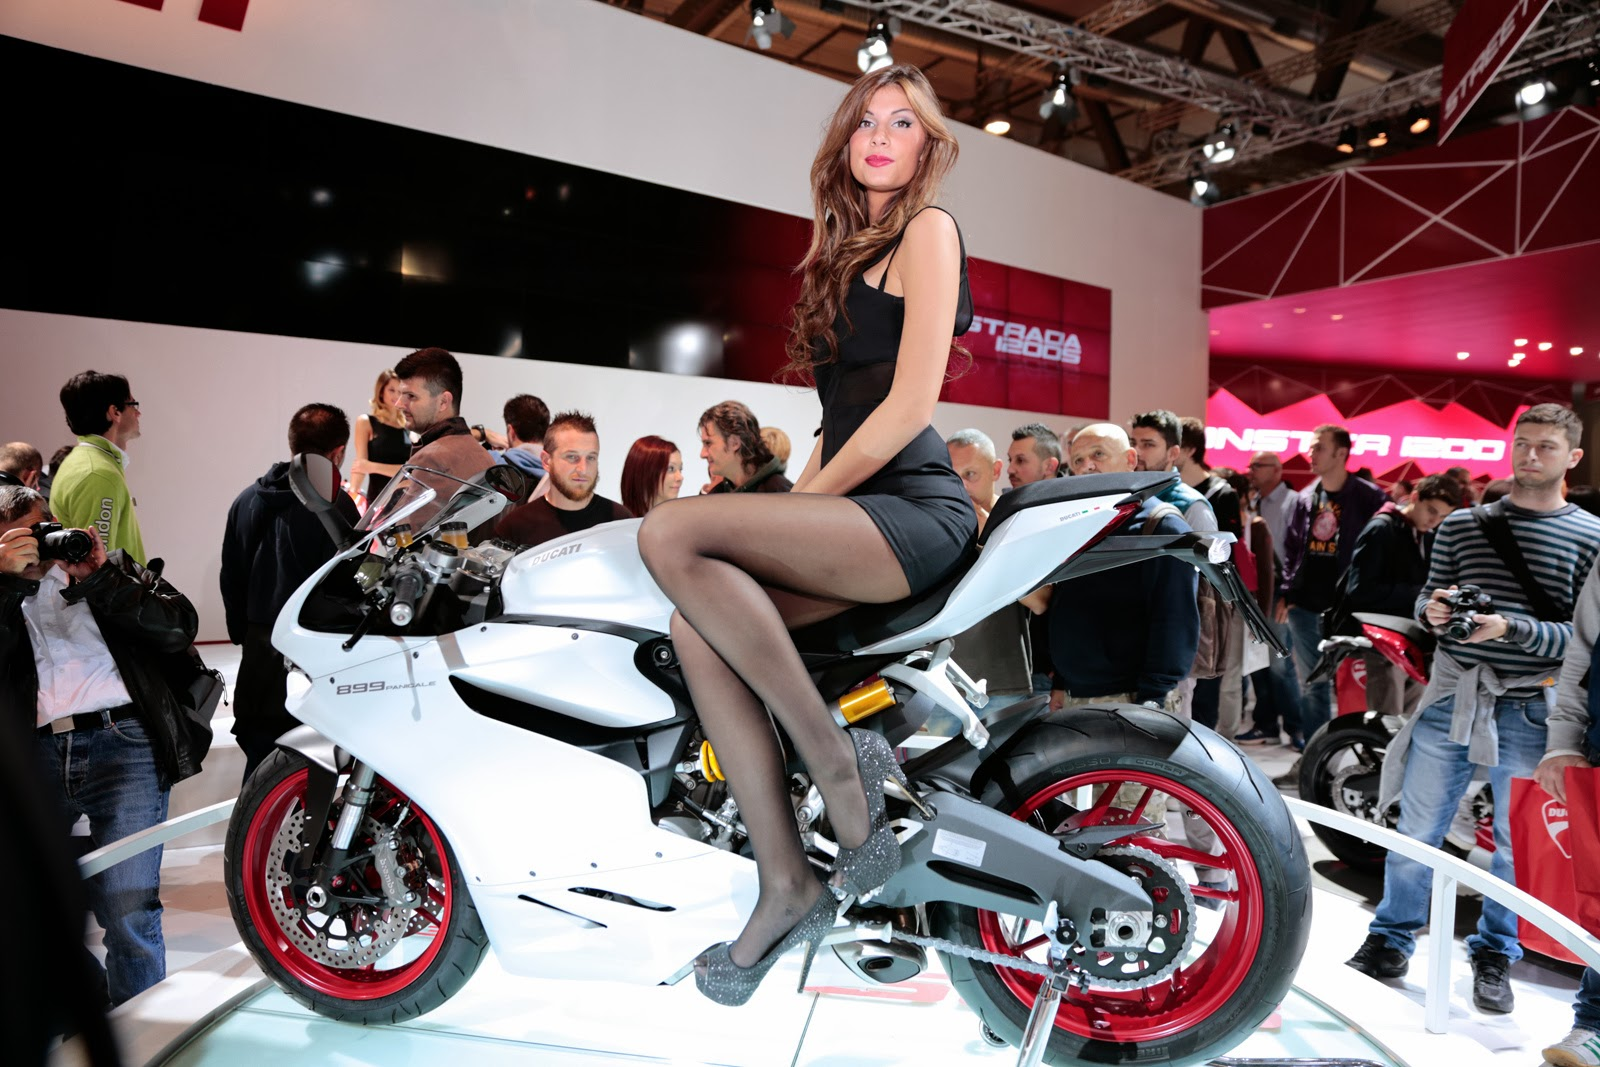 Daisy ducati is going to be in full control all the way to t - 2 1